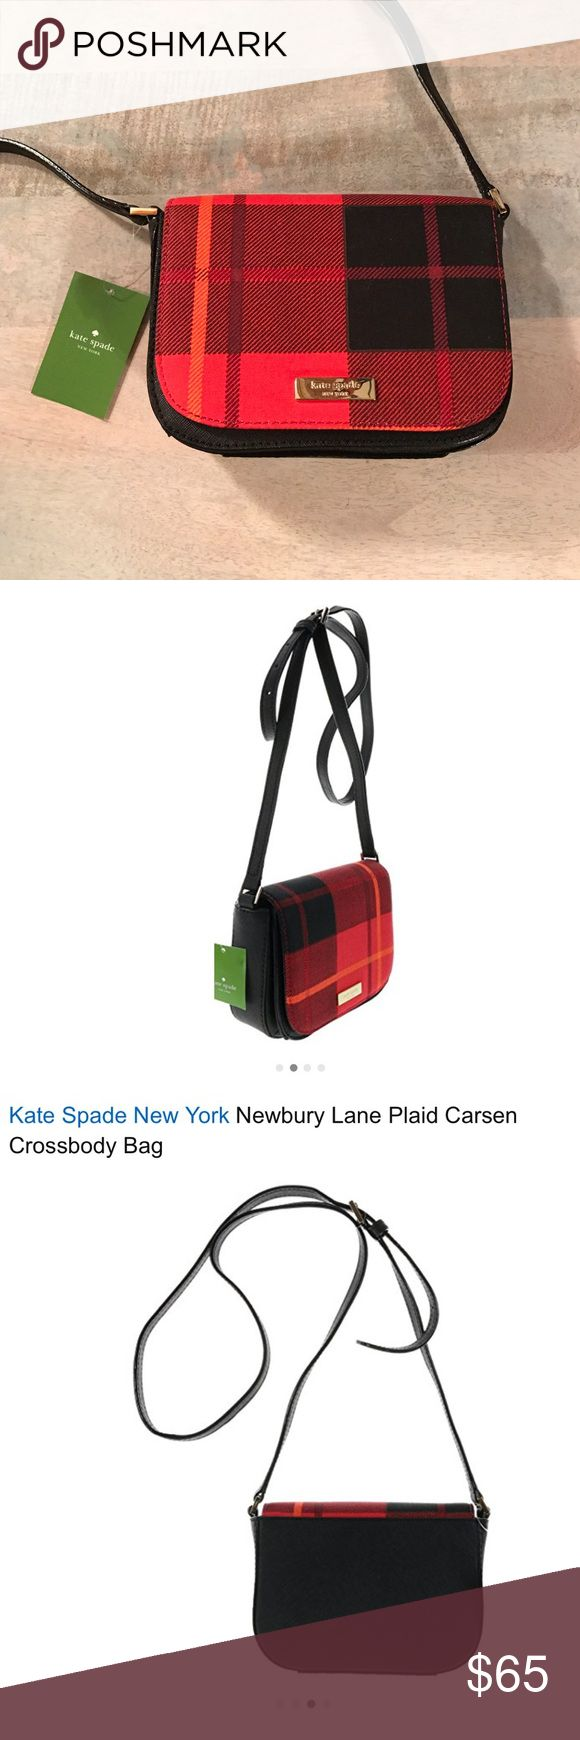 NWT Kate Spade Plaid Carsen Crossbody Bag New with tags authentic Kate Spade Newbury Lane plaid Carsen crossbody bag.  Saffiano leather bag with cloth front flap magnetic snap closure and gold toned hardware.  Front has engraved raised Kate Spade nameplate.  Adjustable strap with maximum drop of approx. 23.5 inches Fabric lined interior features front full length slip pocket; Main compartment has 1 slip pocket Approx. dimensions: 7 inches (L) x 5 inches (H) x 2.5 inches (W) kate spade Bags